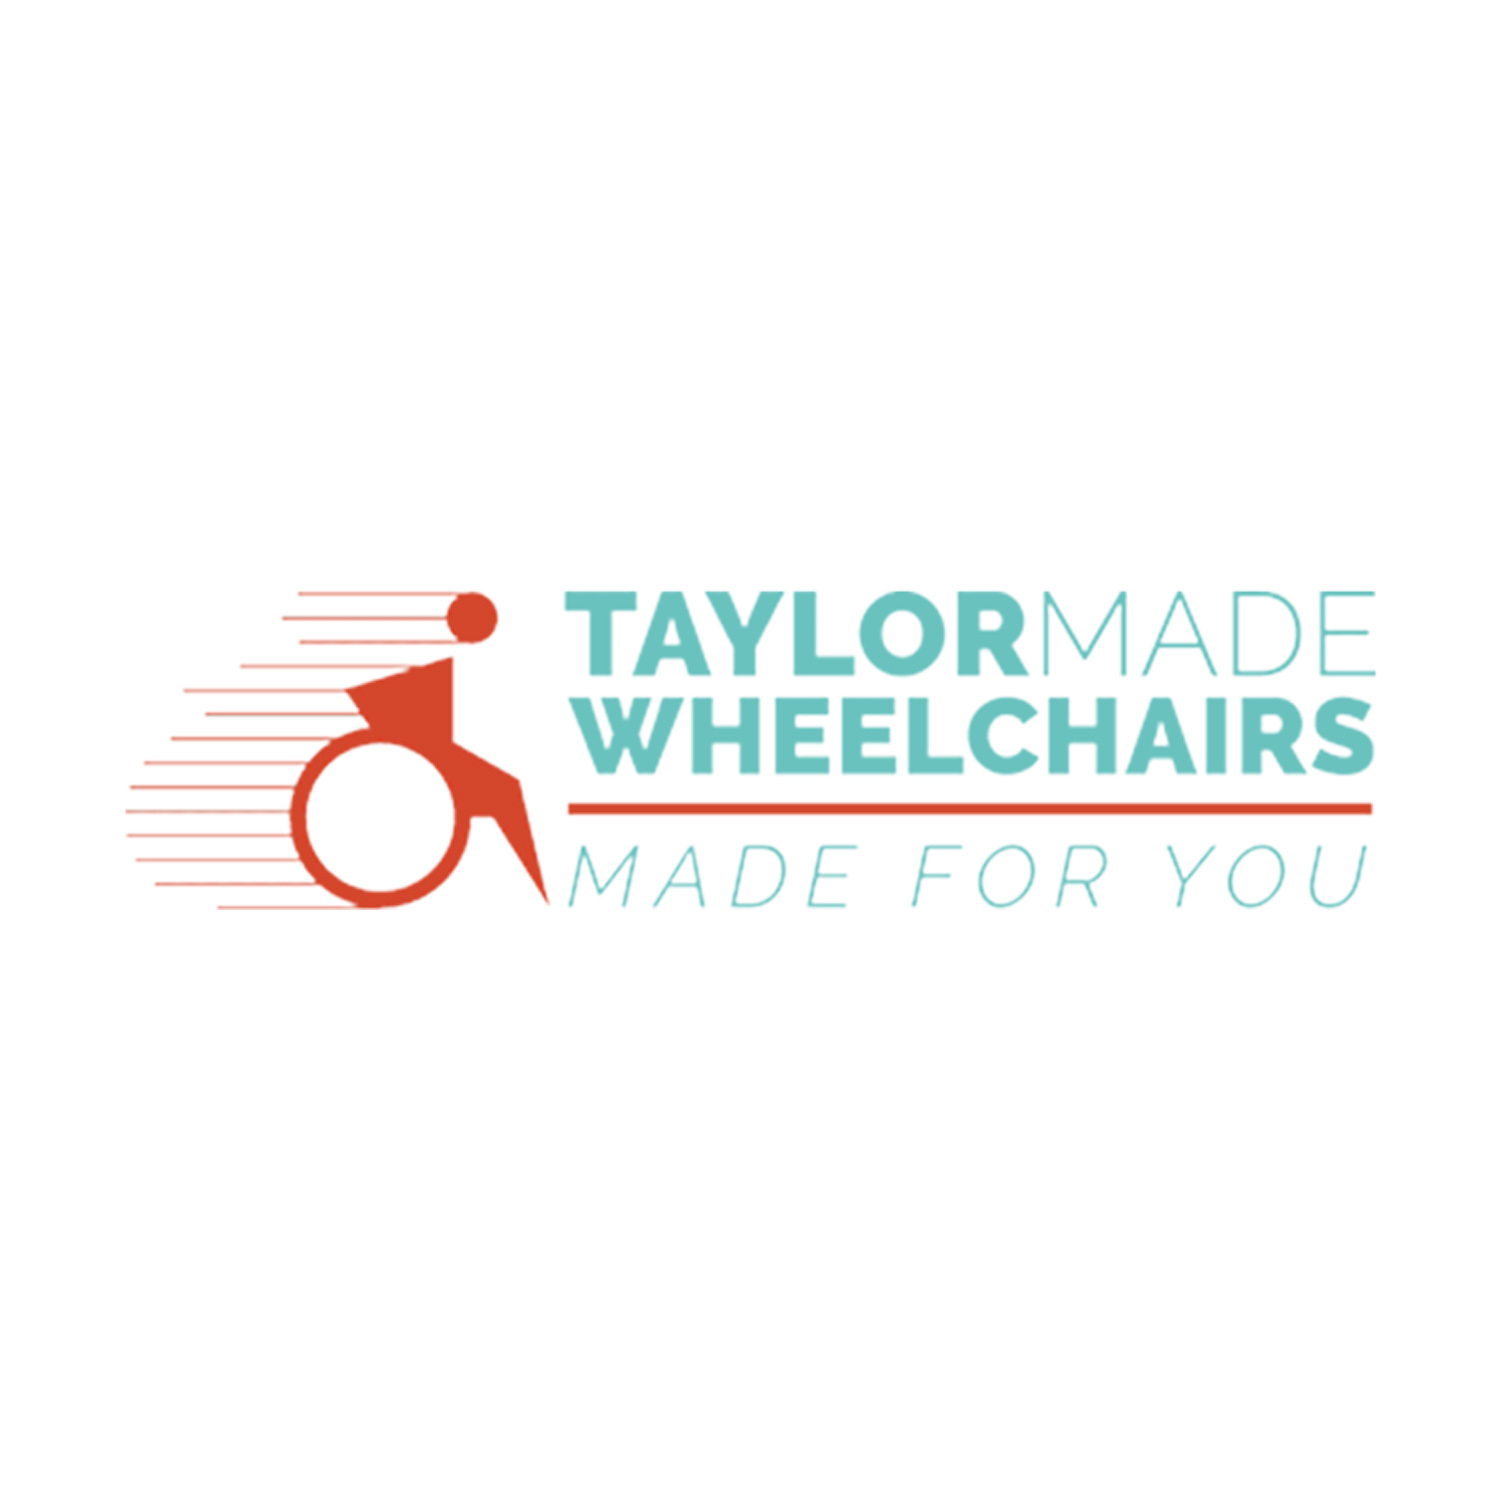 taylor made wheelchairs